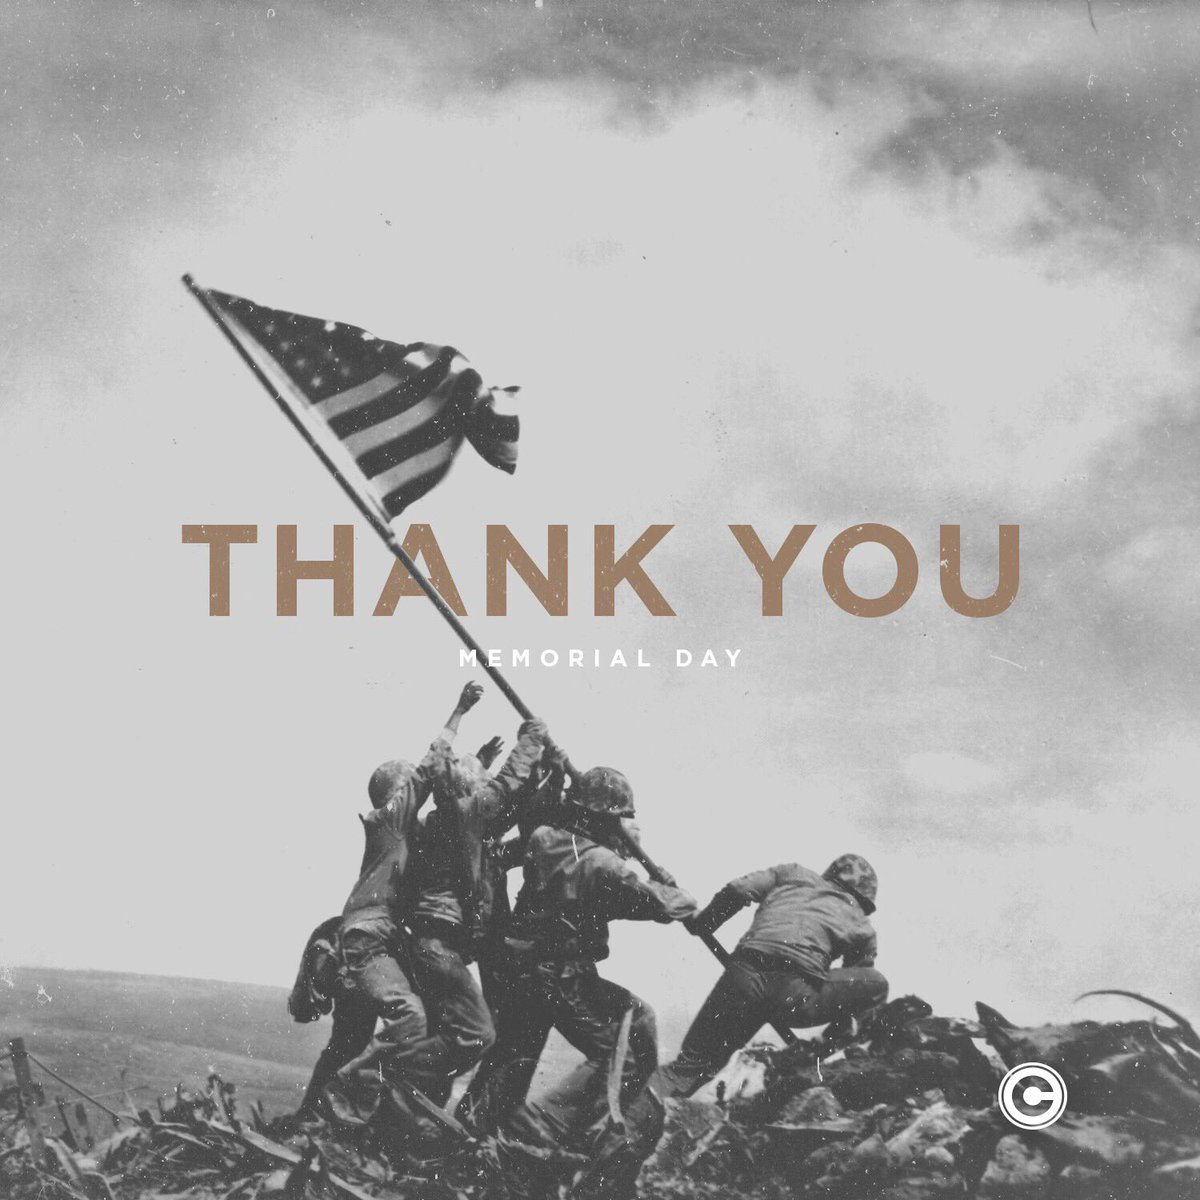 Today we honor the men and women who made the ultimate sacrifice for our freedom. Thank you. https://t.co/CwciFDvLtU